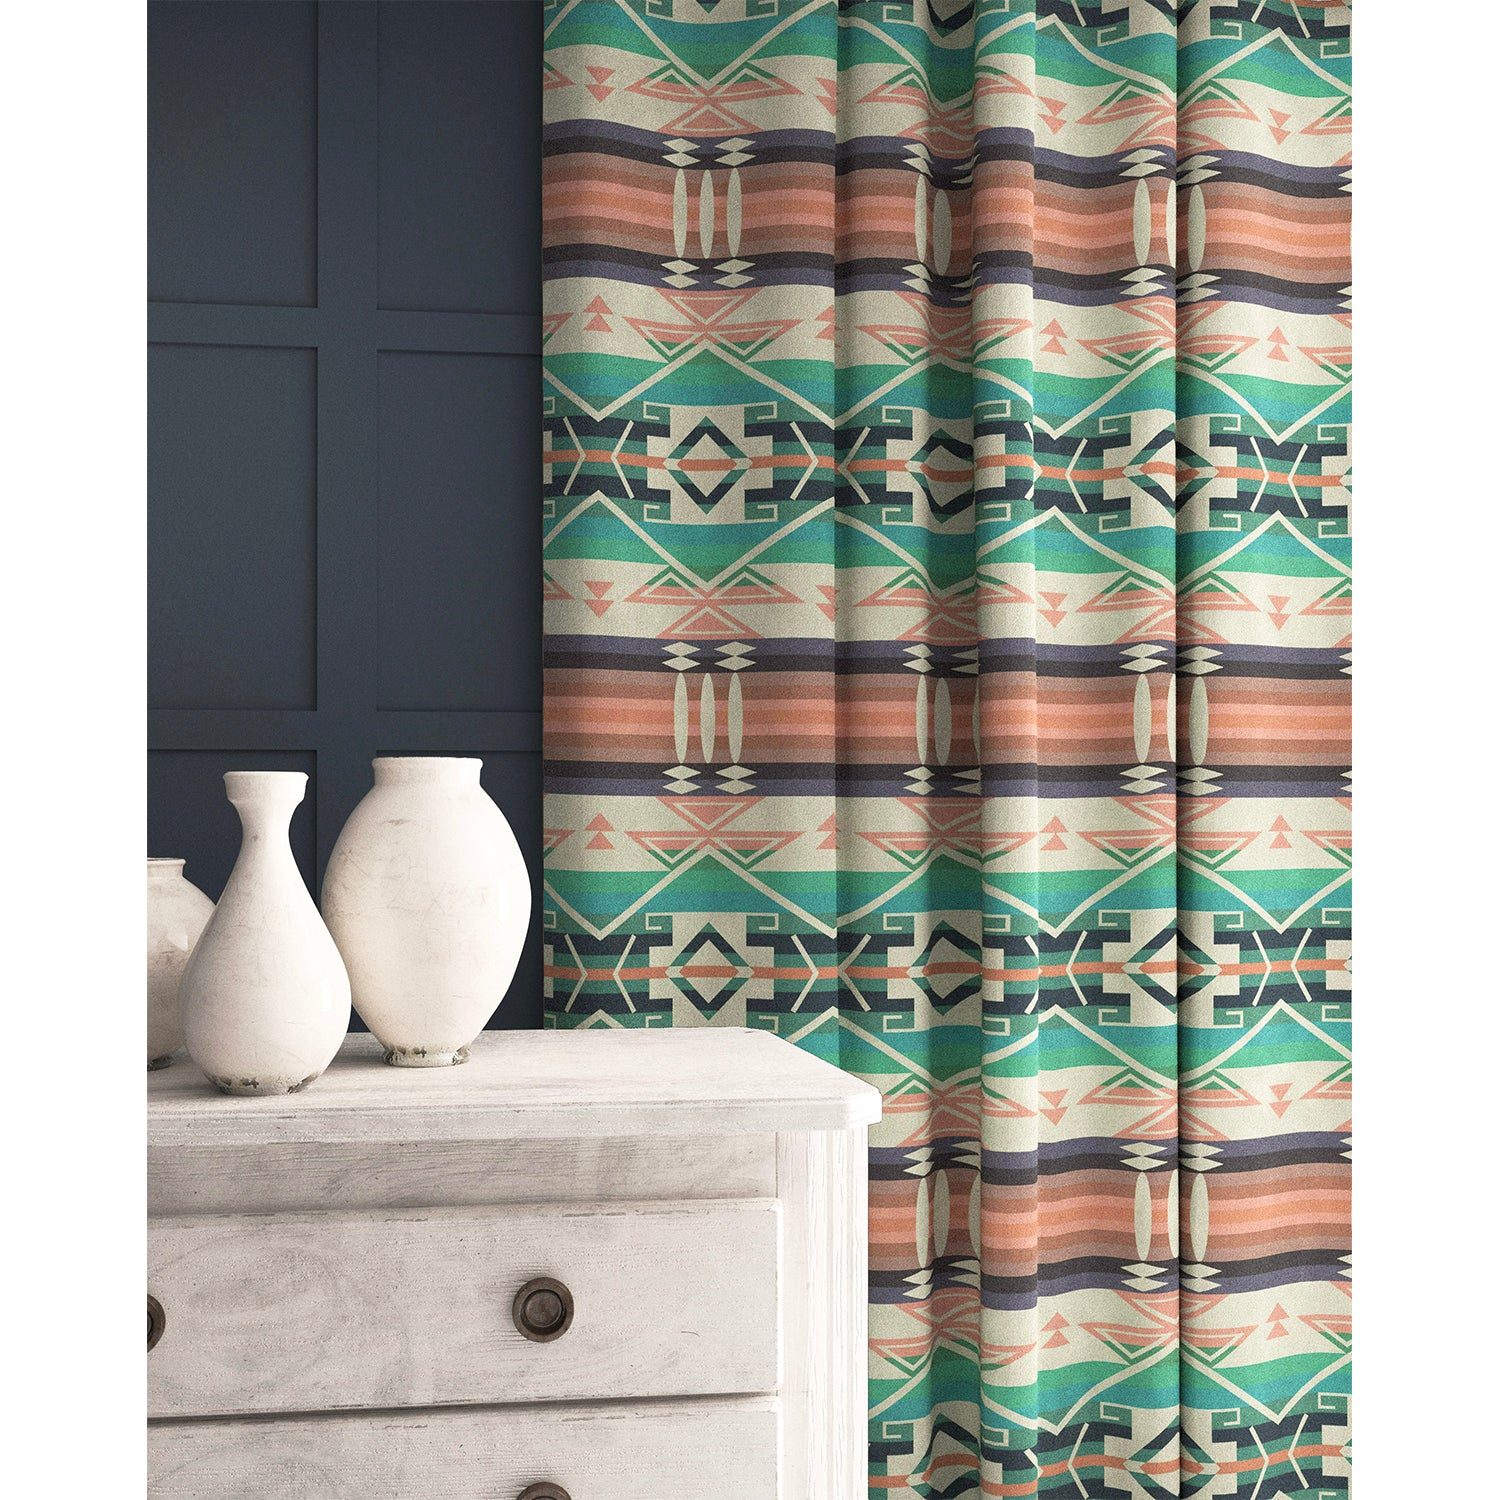 Curtain in a light pastel coloured wool fabric with South American inspired design